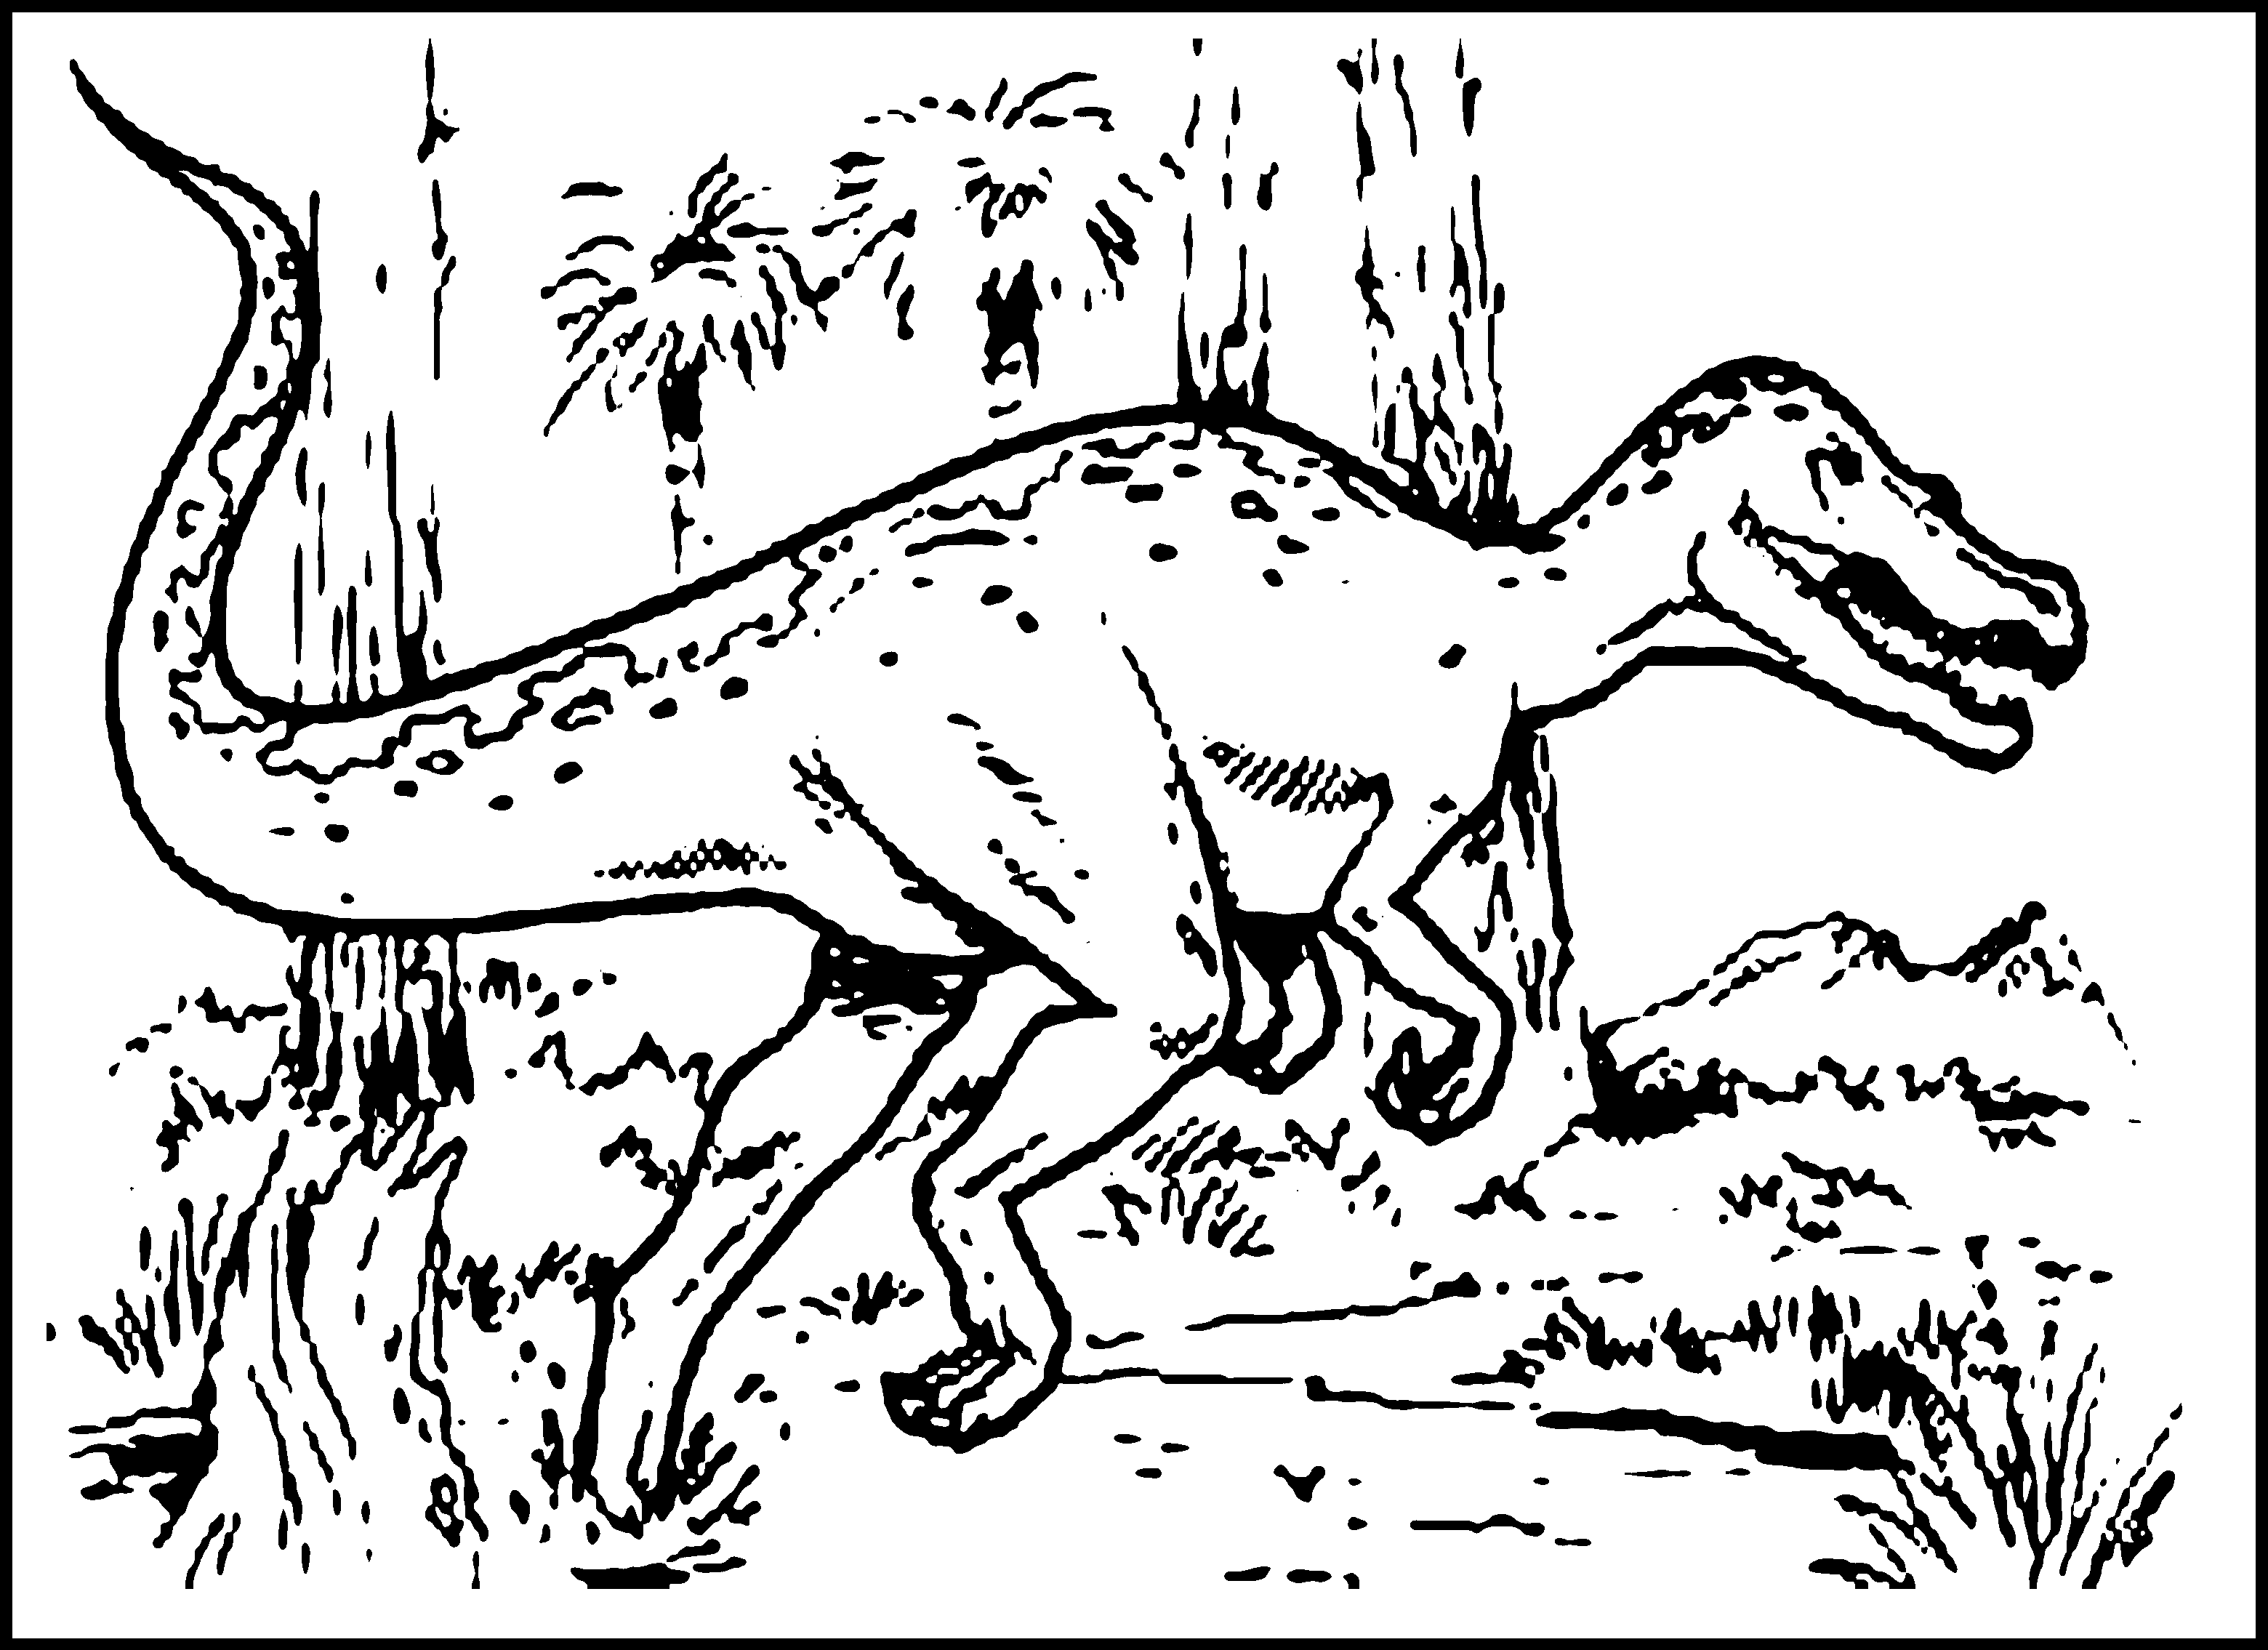 dinosaur coloring pages for kids dinosaurs for children triceratops dinosaurs kids coloring for kids dinosaur pages